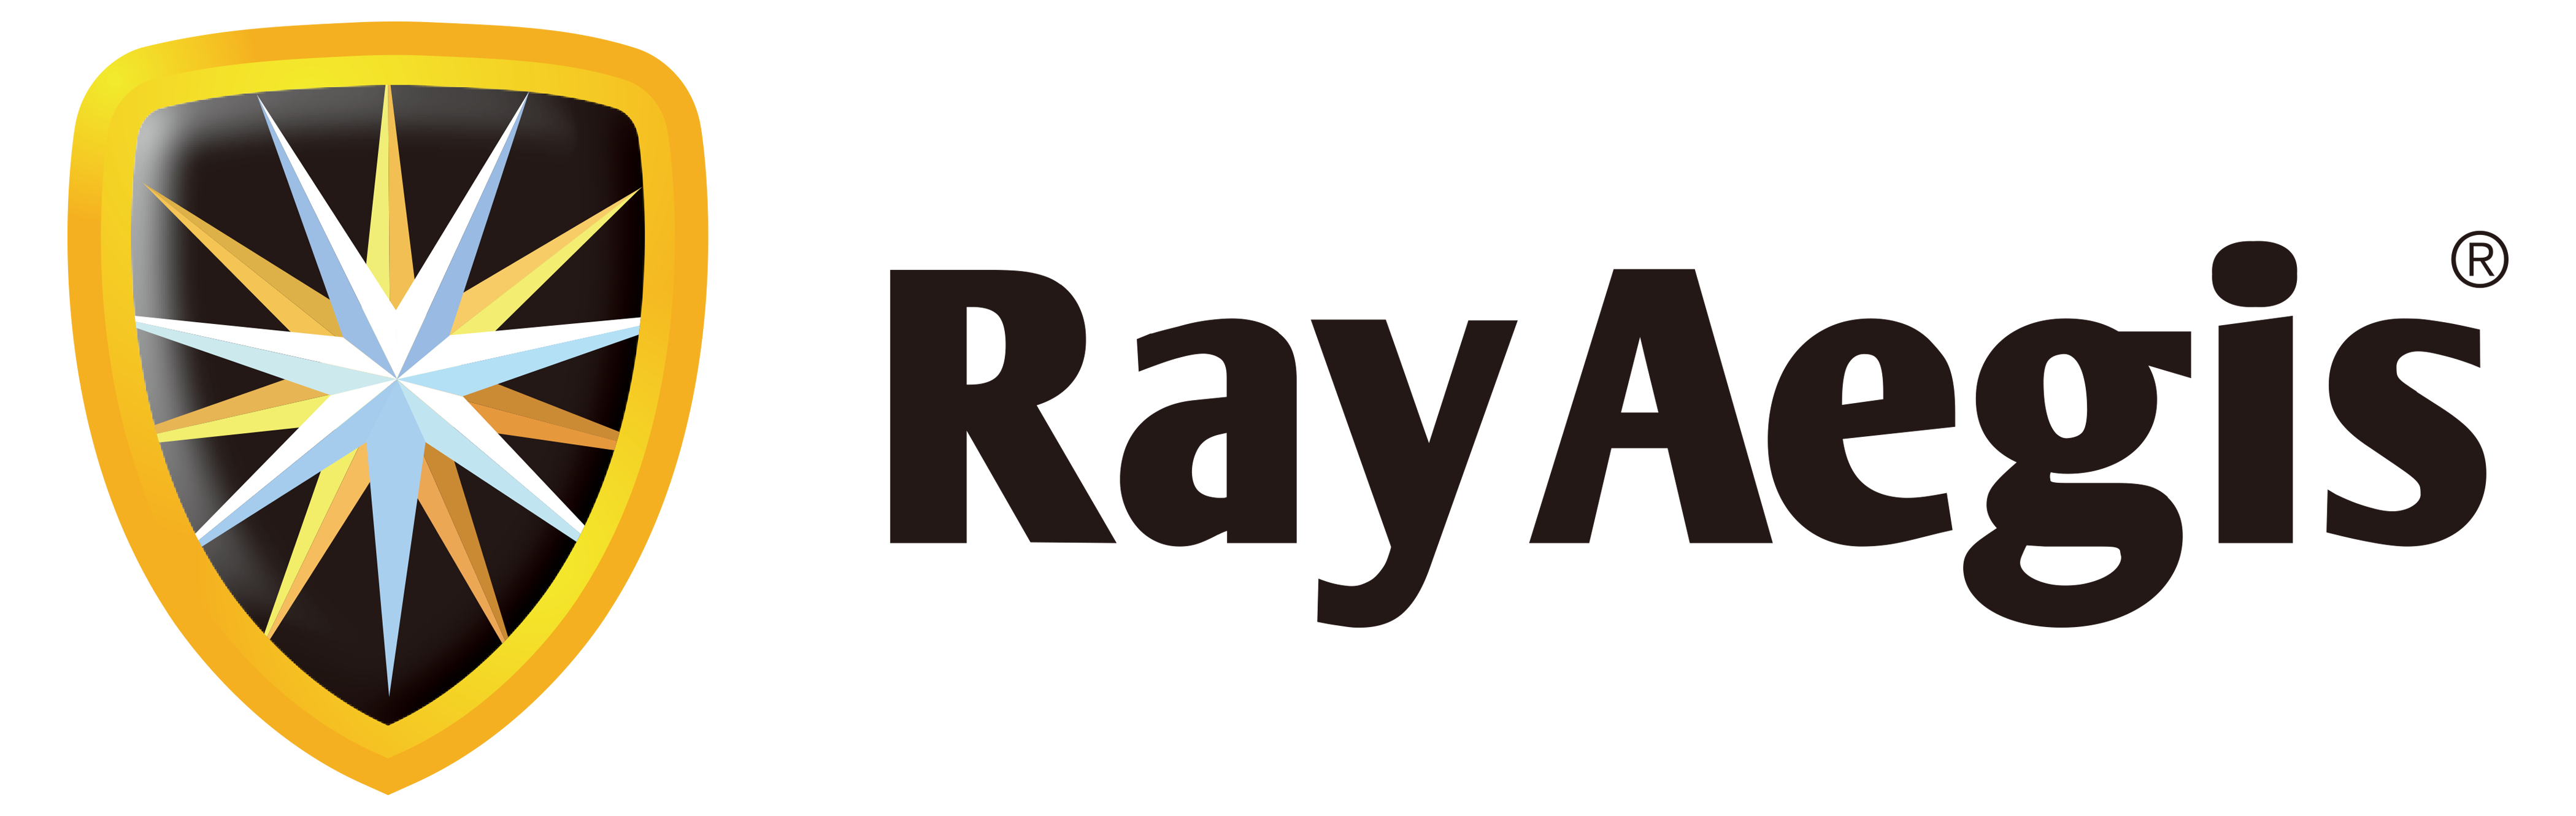 RayAegis Information Security